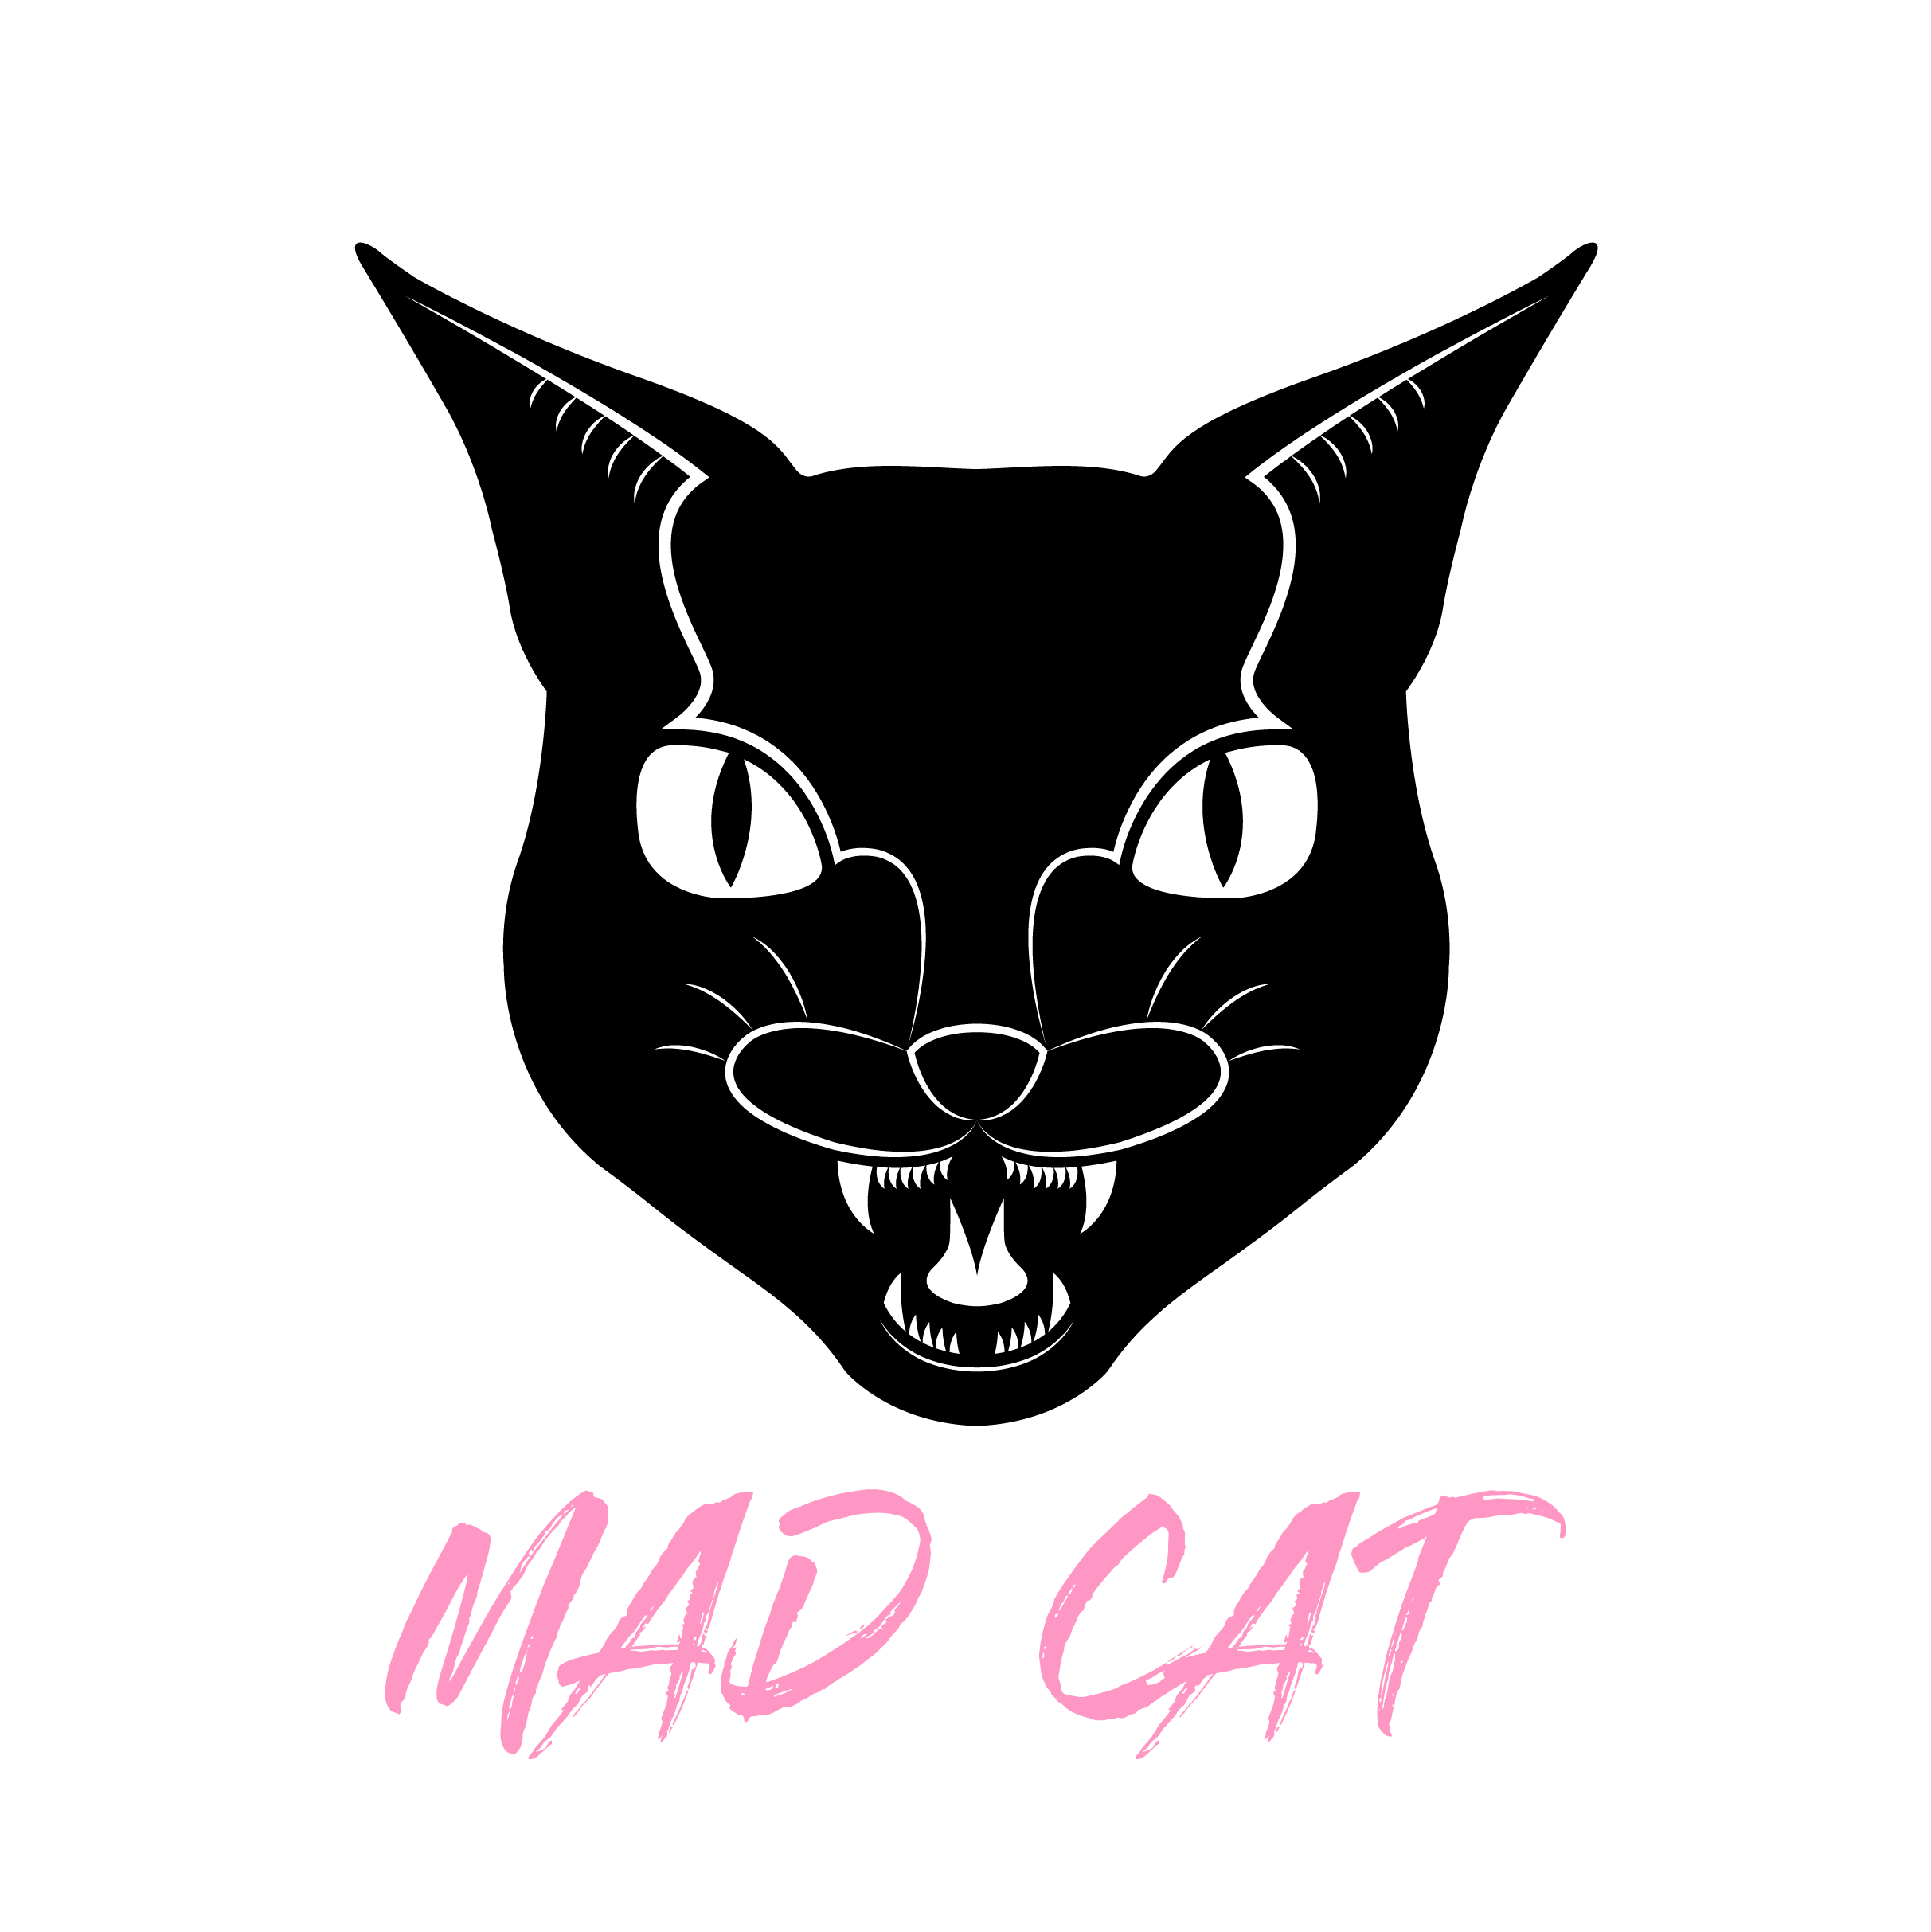 MAD CAT productions